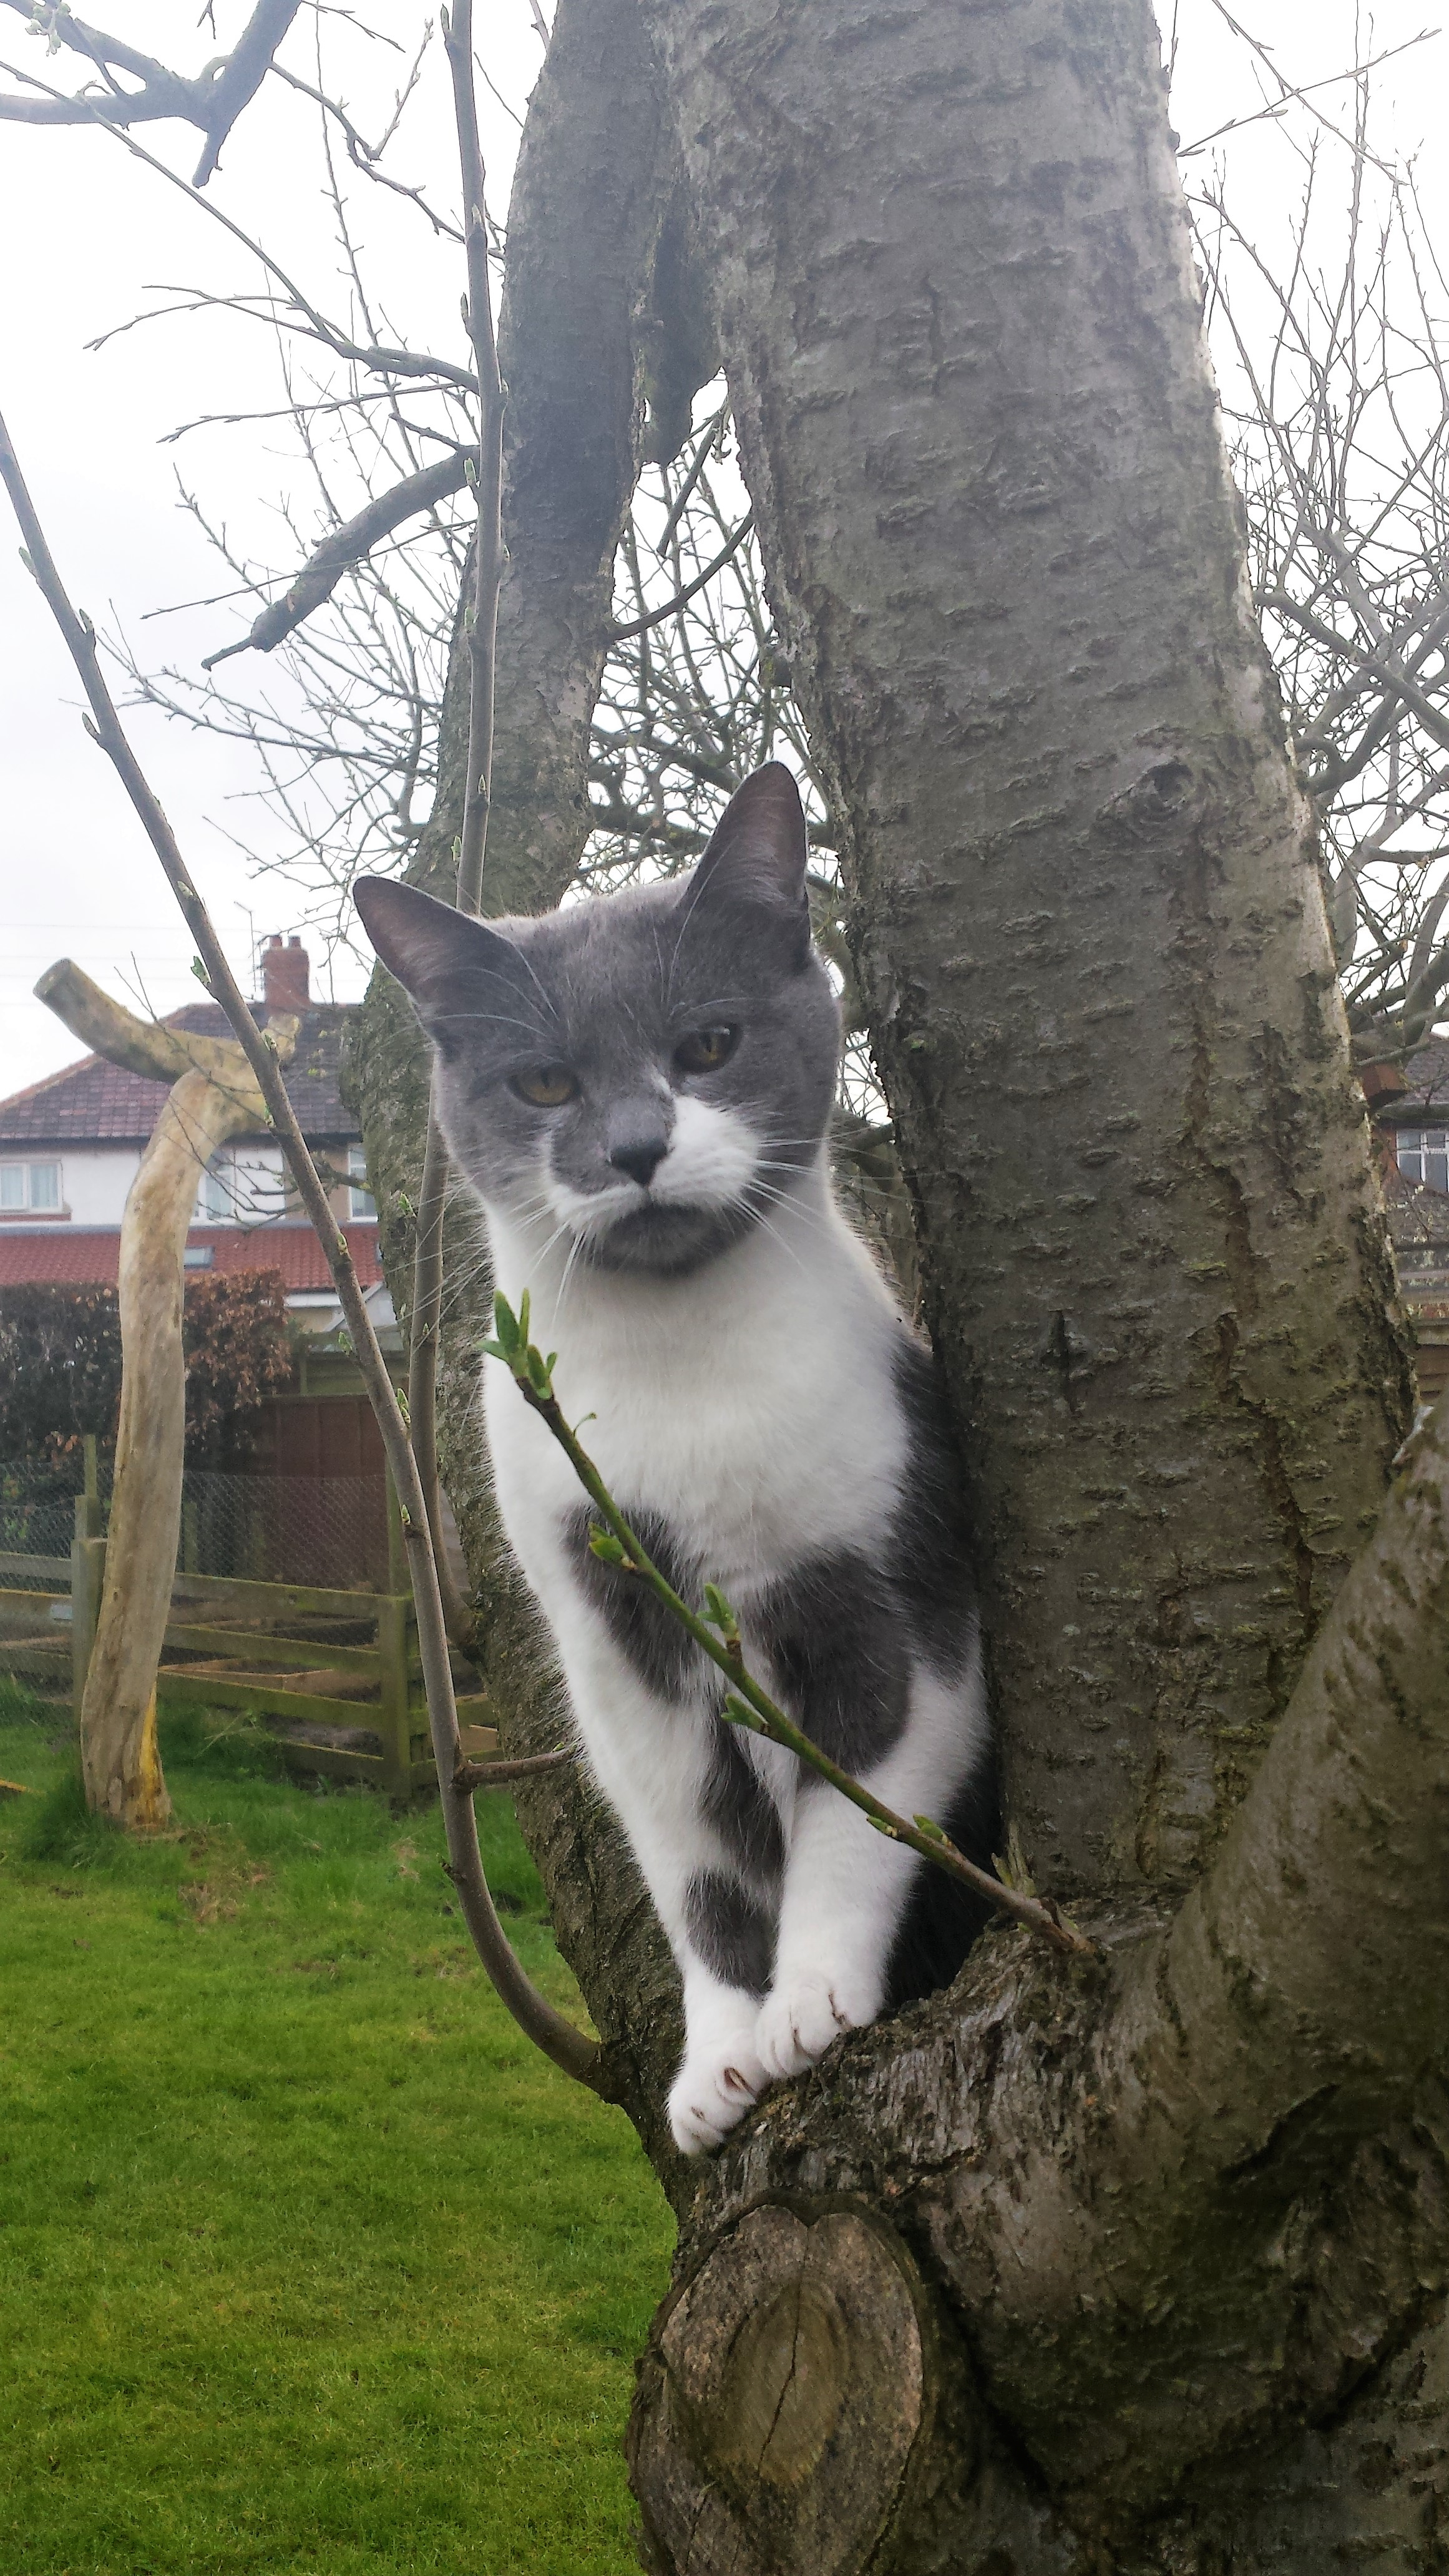 Grey and white cat up a tree